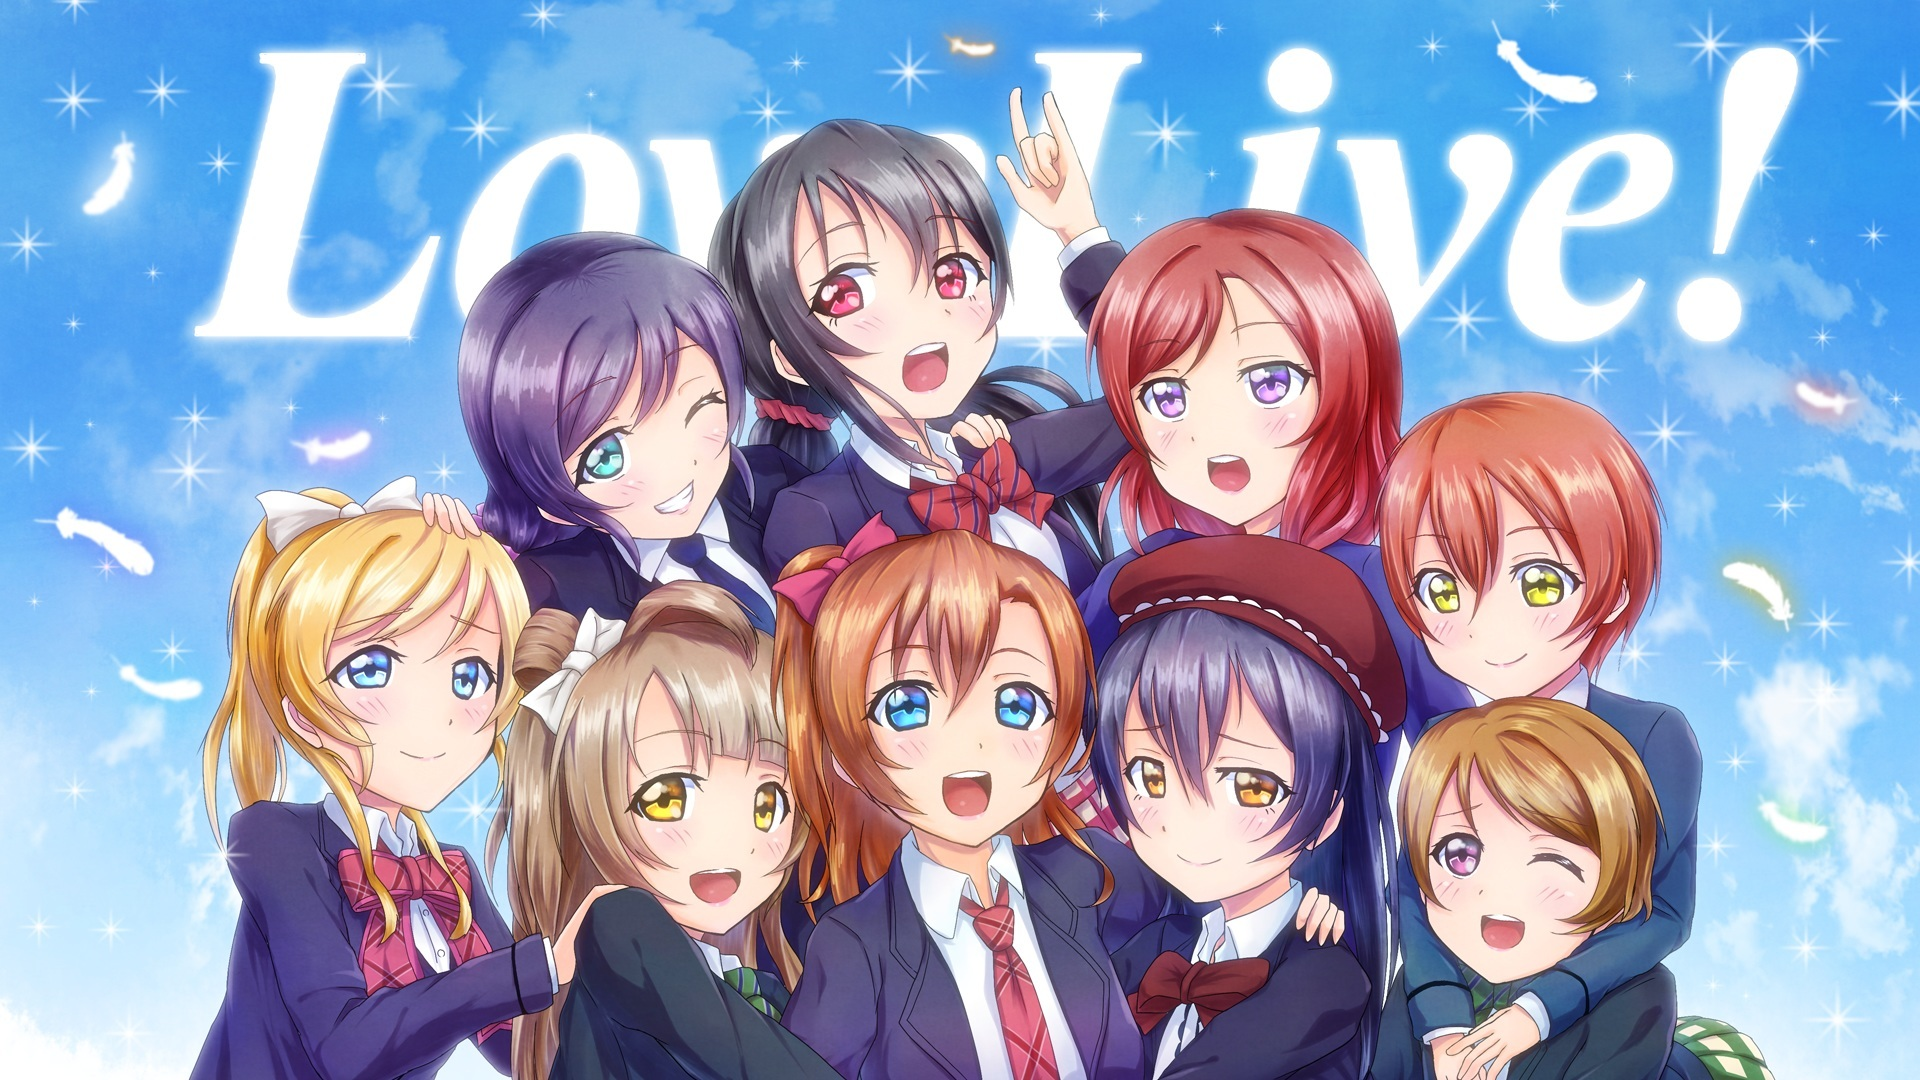 Check it out! 's Final Love Live tracklisf for DVD/BD